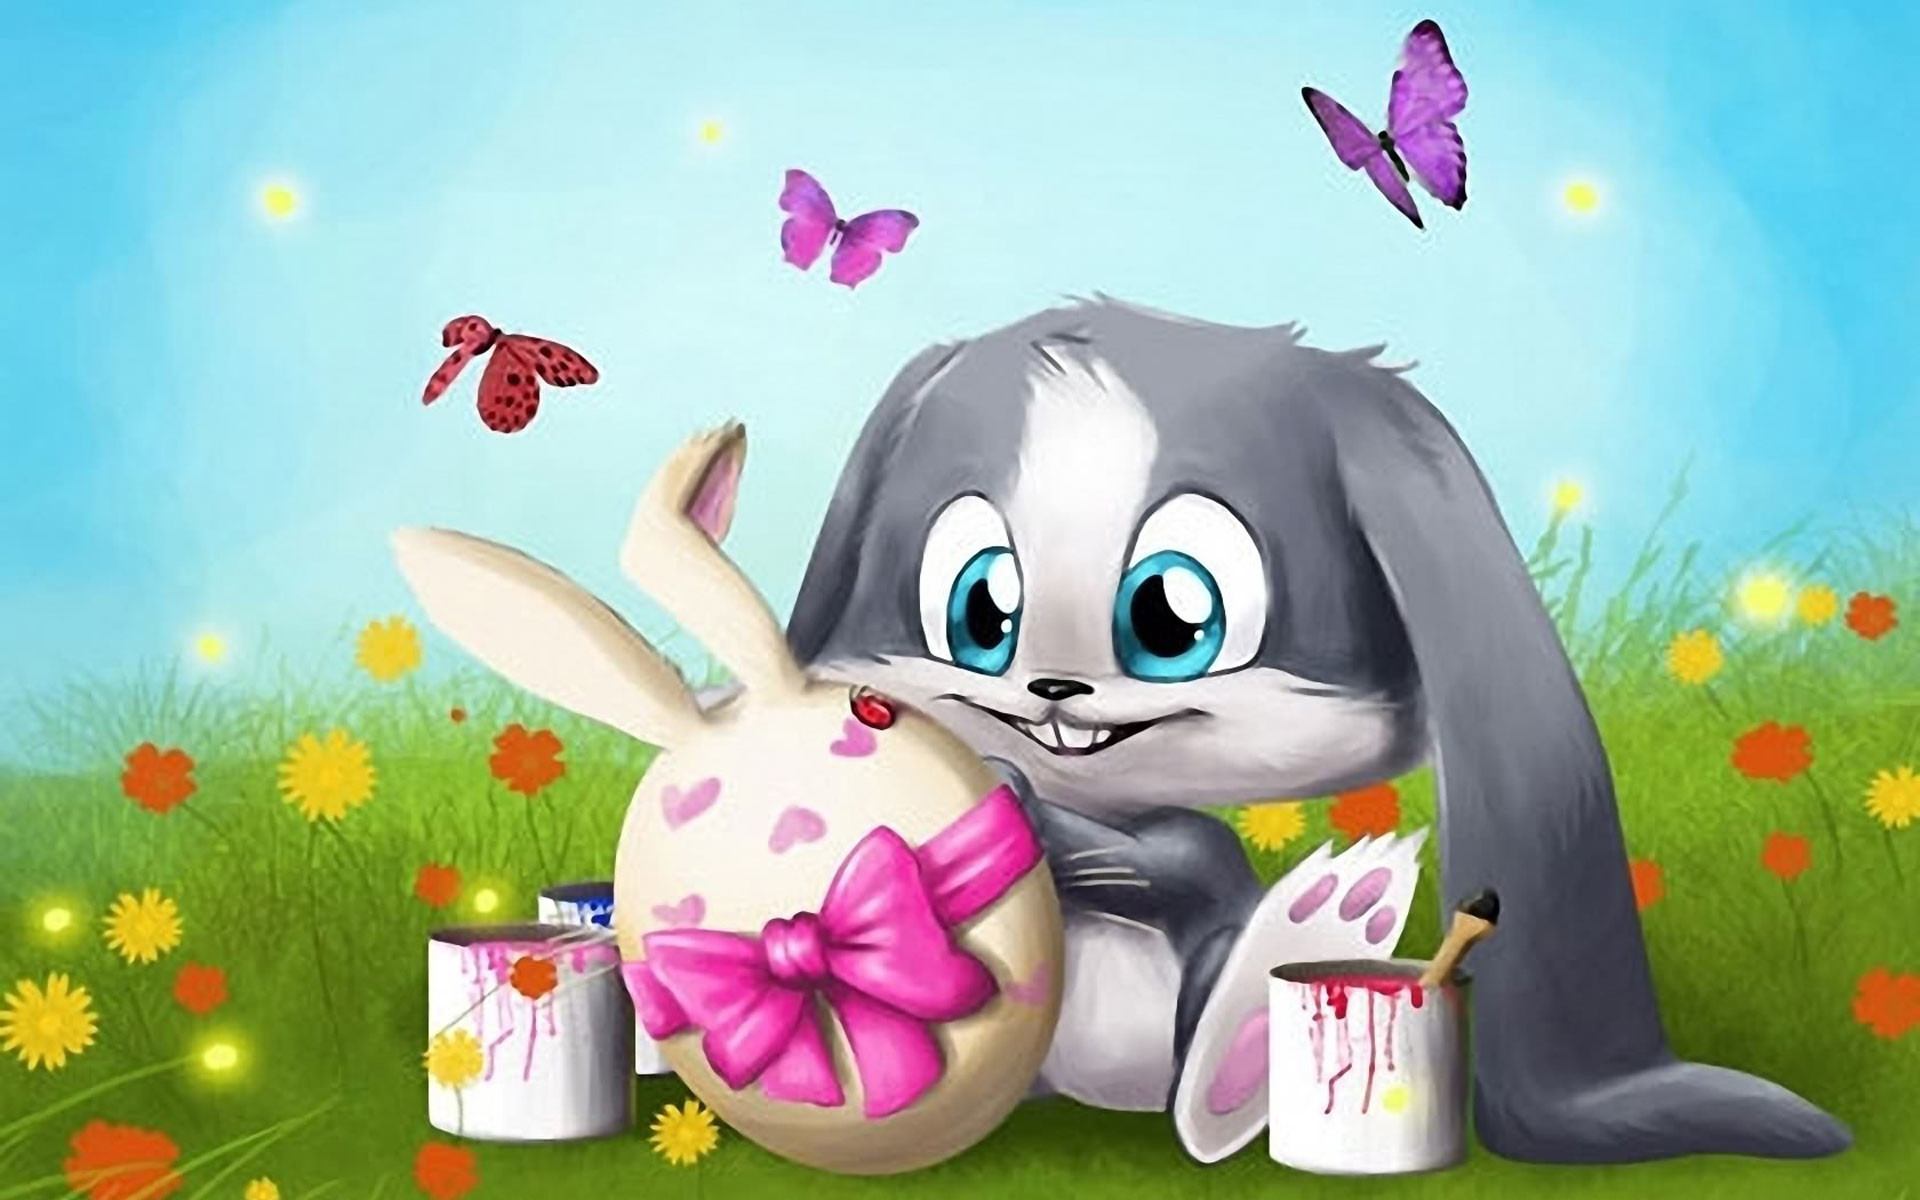 Here you will find Easter Day Bunny images, Easter Day Bunny, history of  Easter Day, Happy Easter Easter Bunny Wallpapers 2017